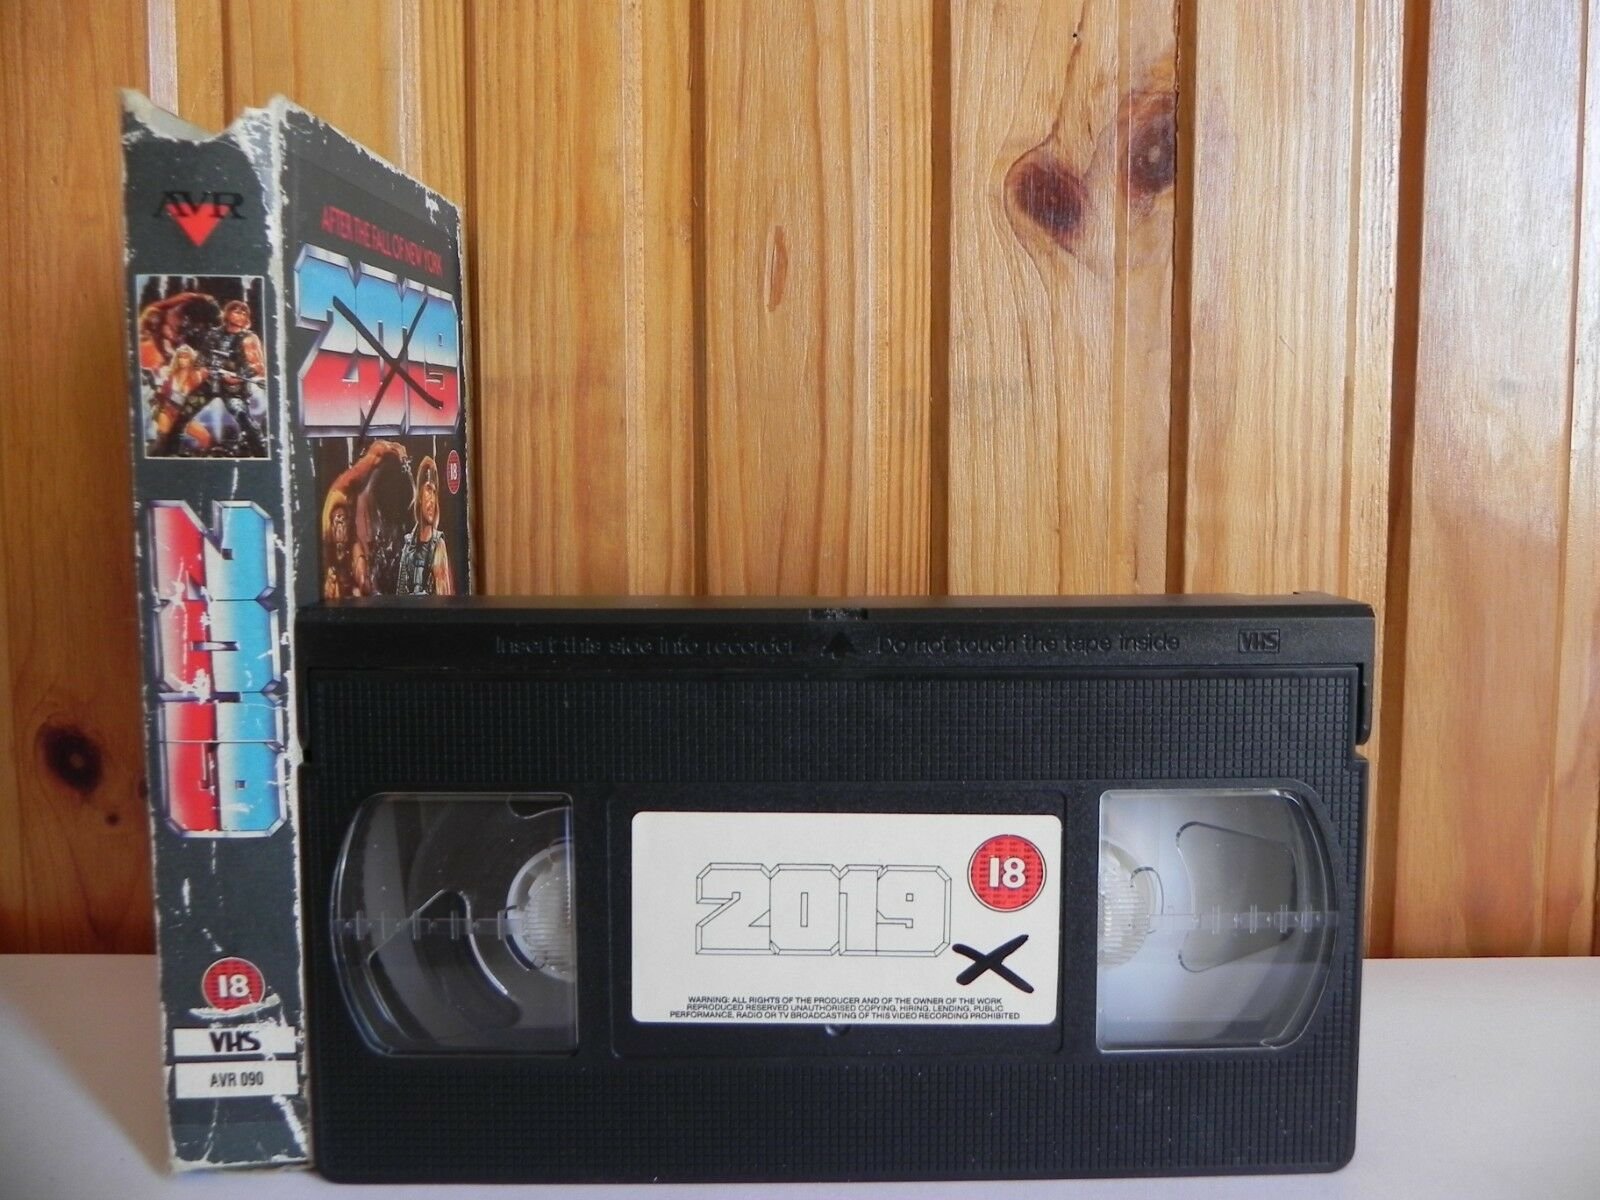 2019, After, AVR, Carton, Cert, Fall, New, Of, Pal, Sci-Fi & Fantasy, The, VHS, York